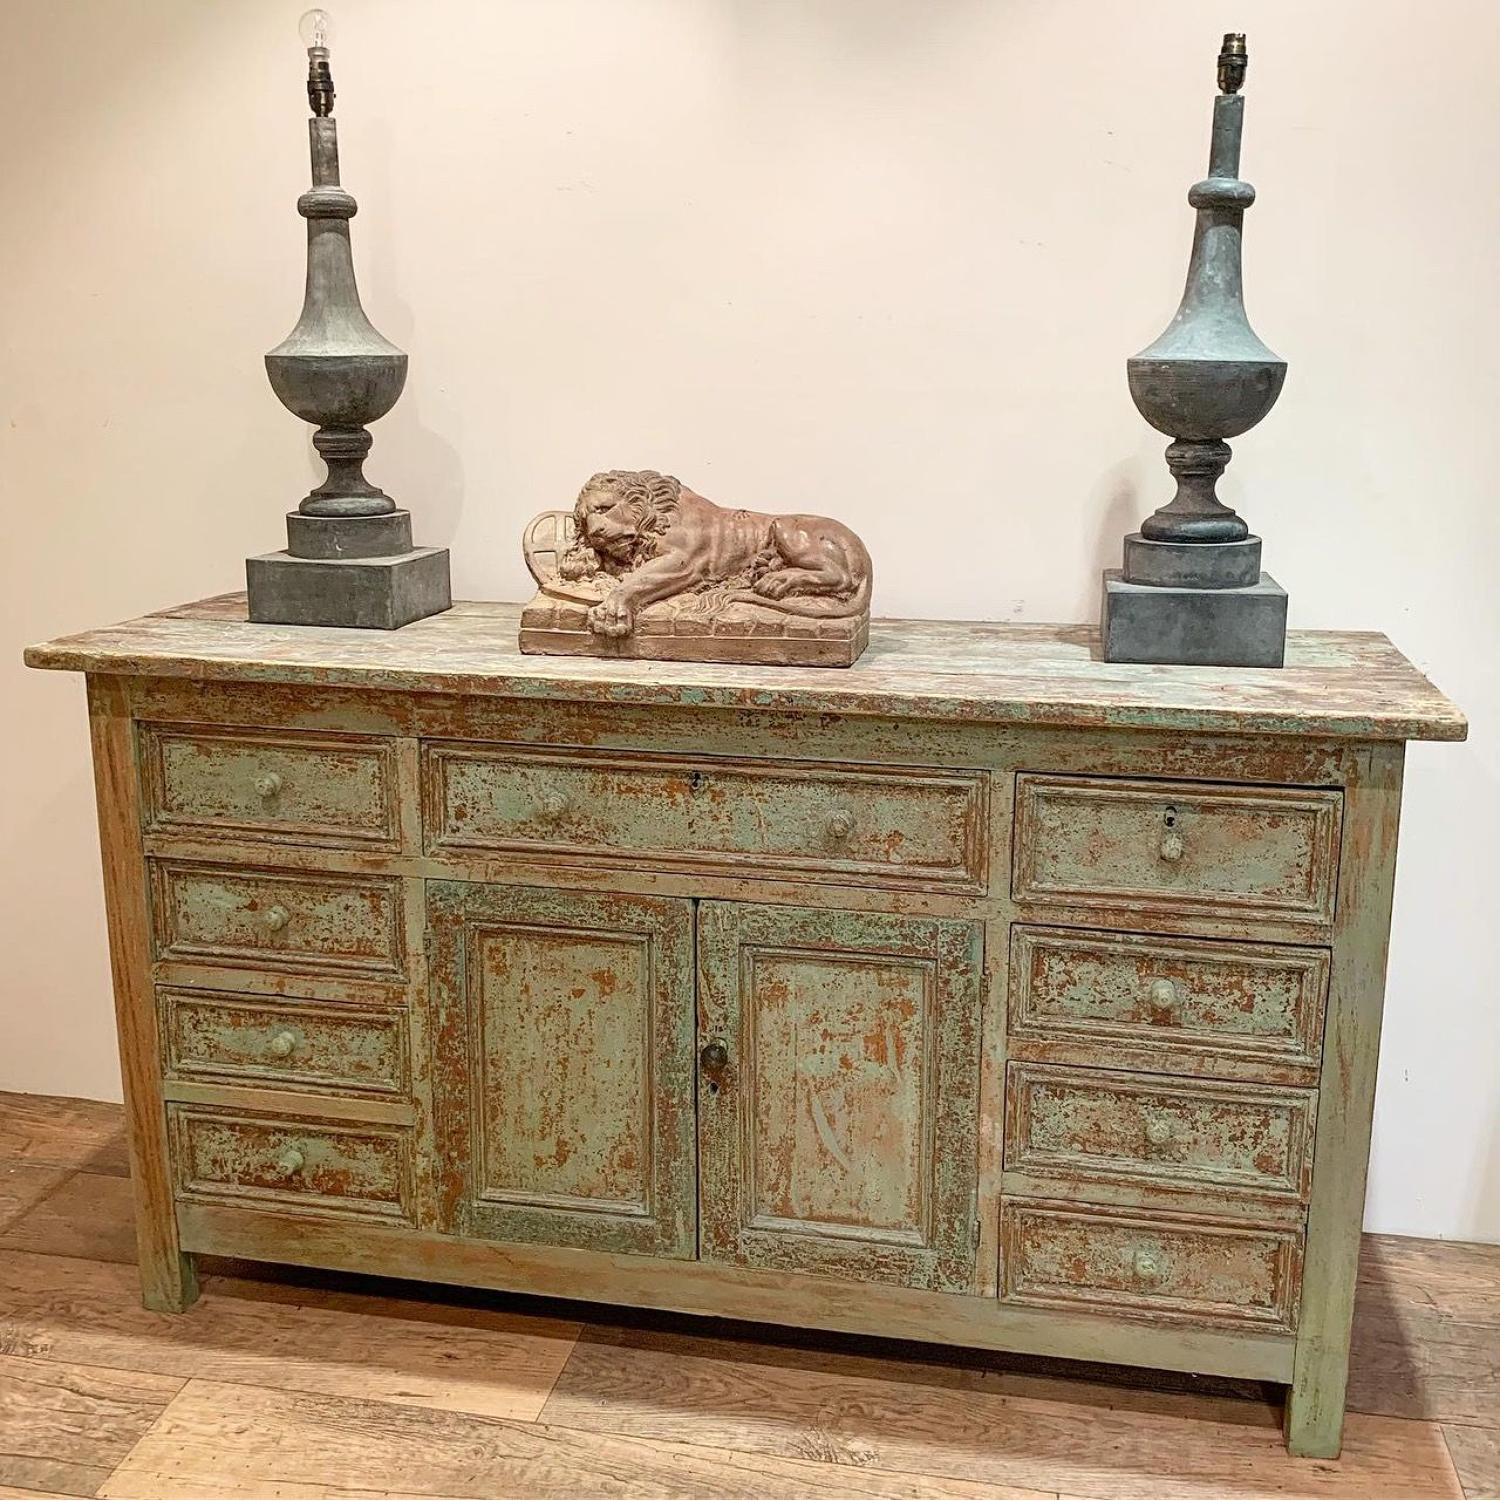 EARLY 20TH CENTURY SIDEBOARD